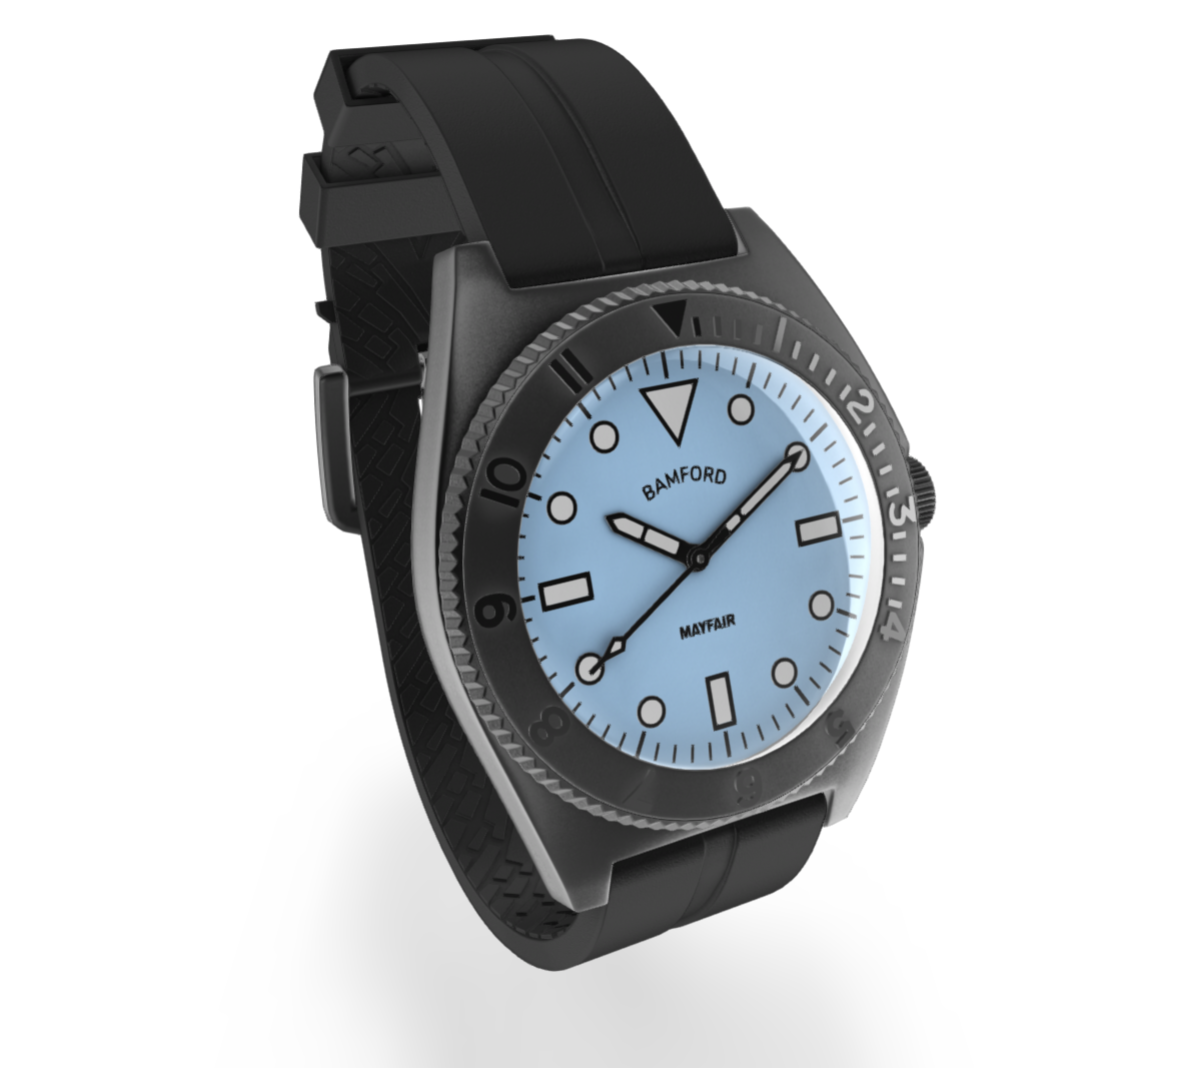 3D wristwatch image created by Threekit's 3D product configurator